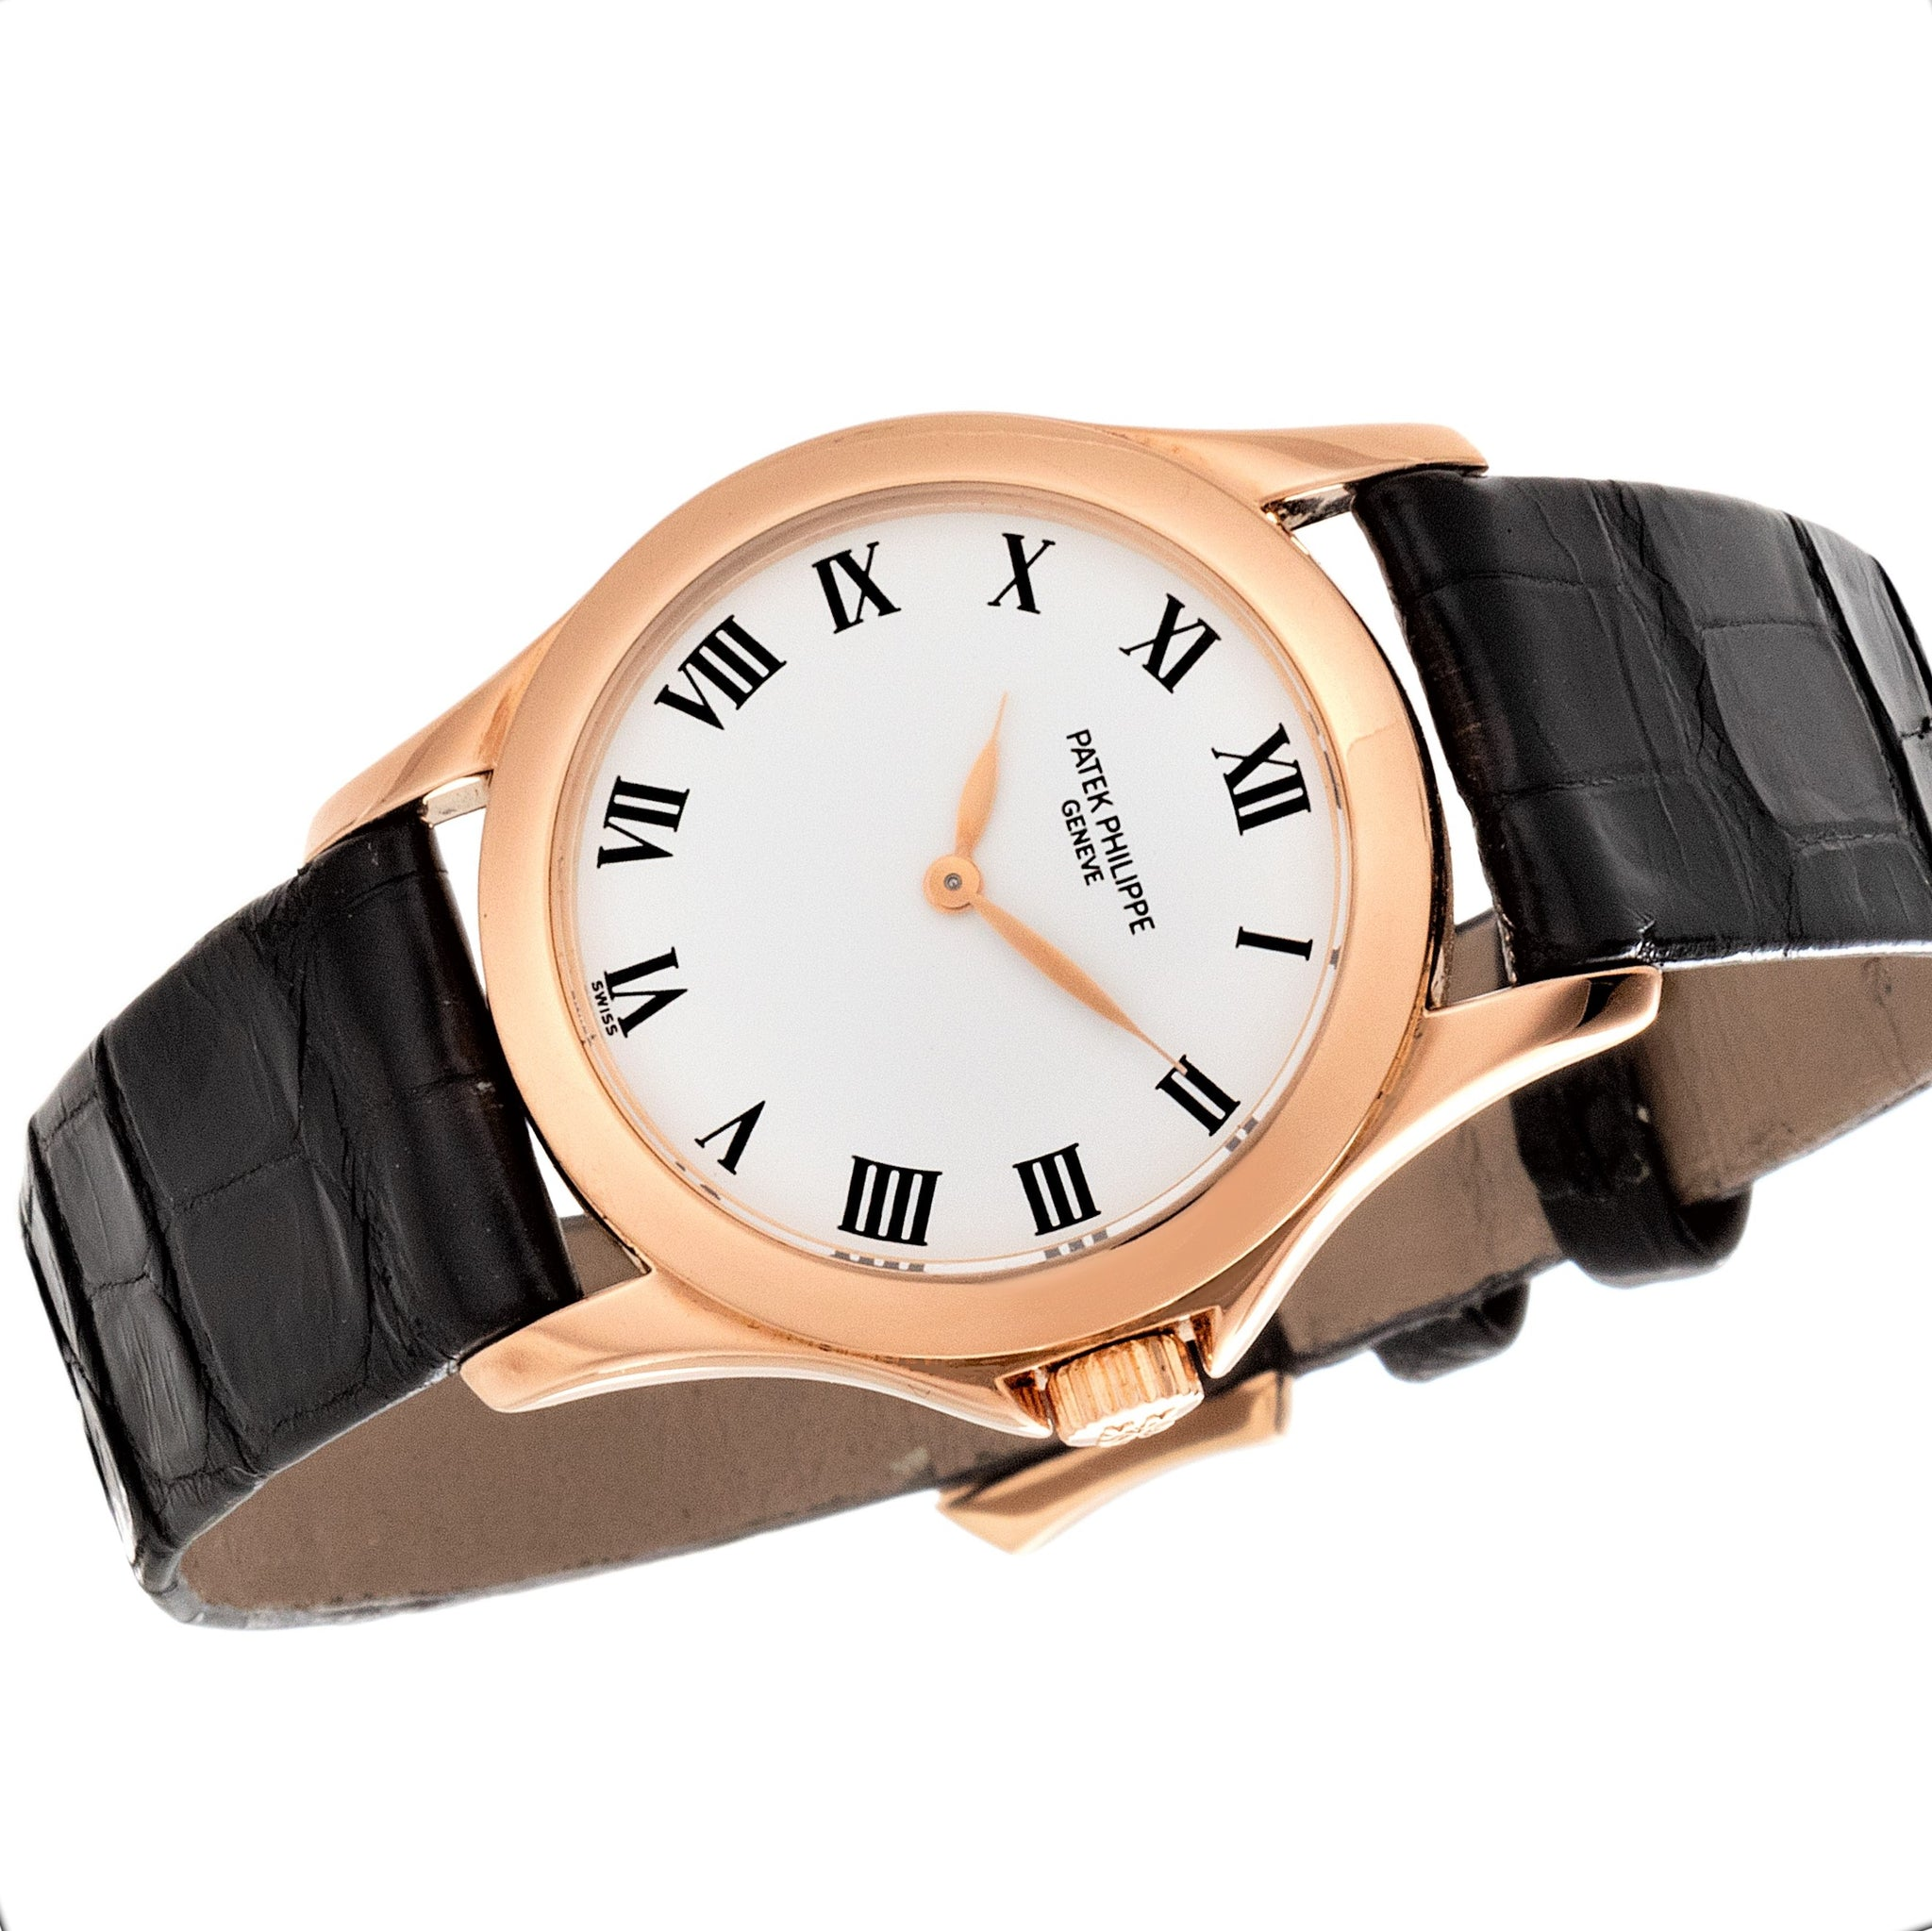 Patek Philippe 4905R Calatrava Watch